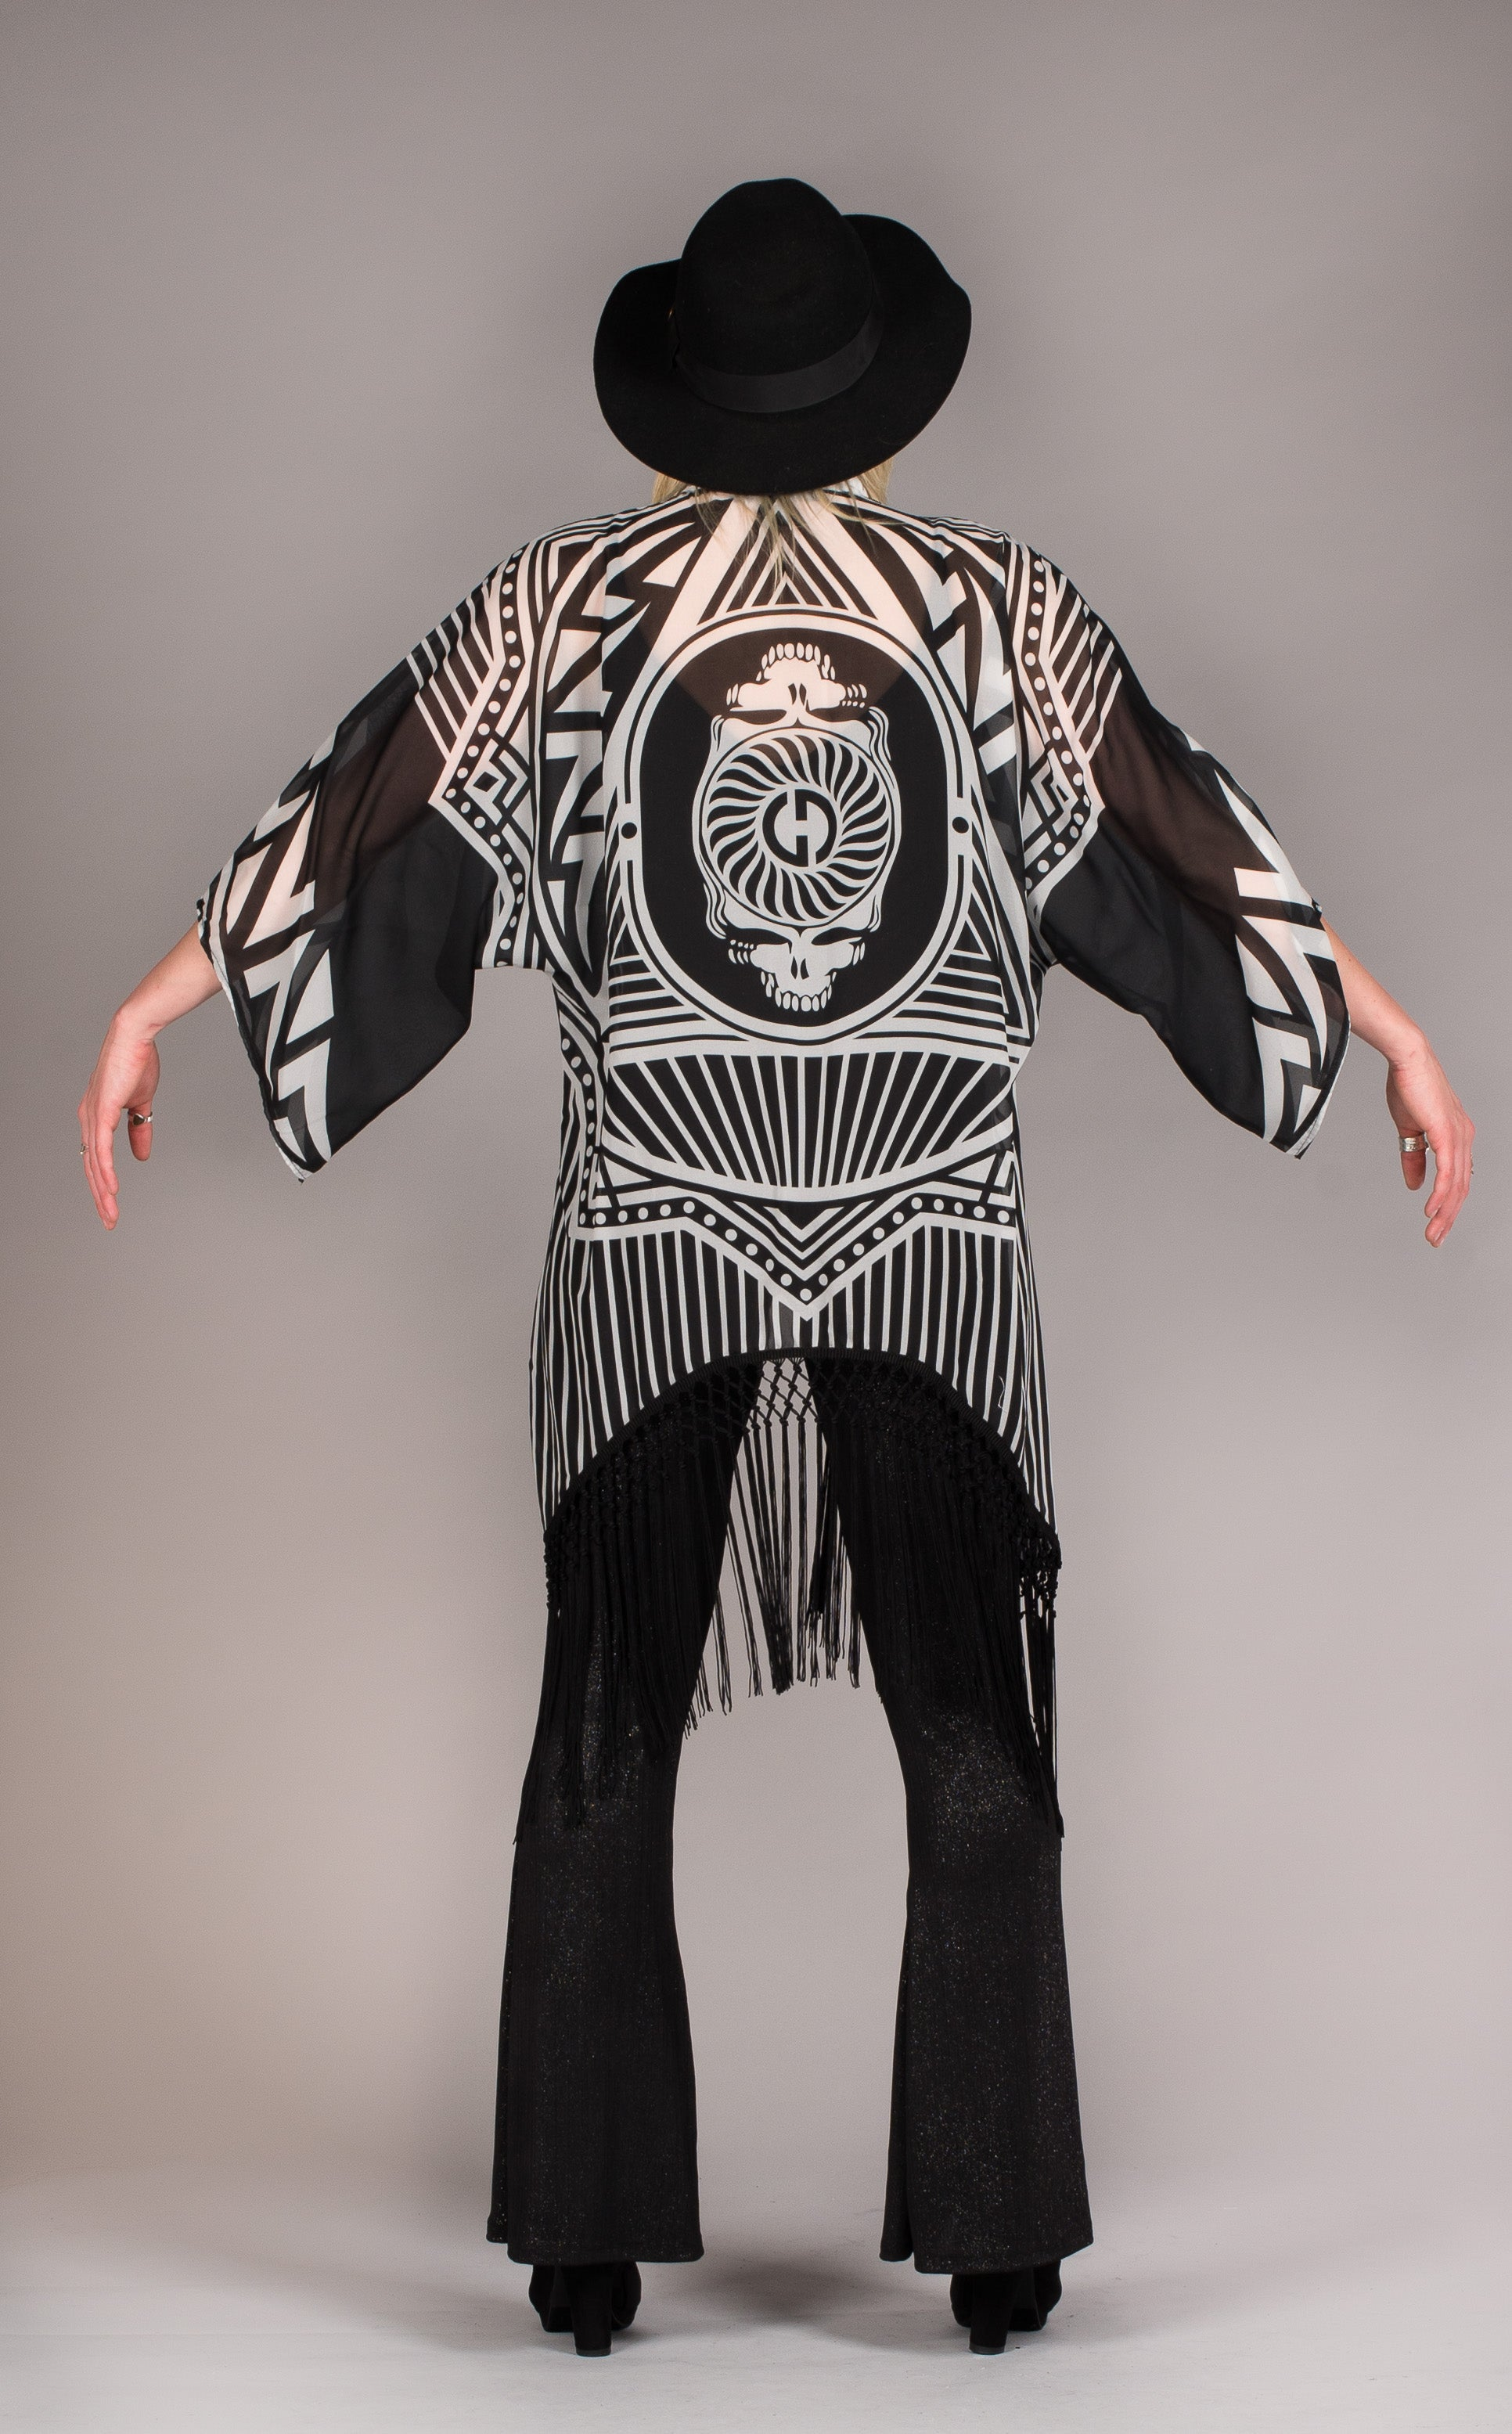 Grateful Dead skeleton robe w/fringe-Black and white